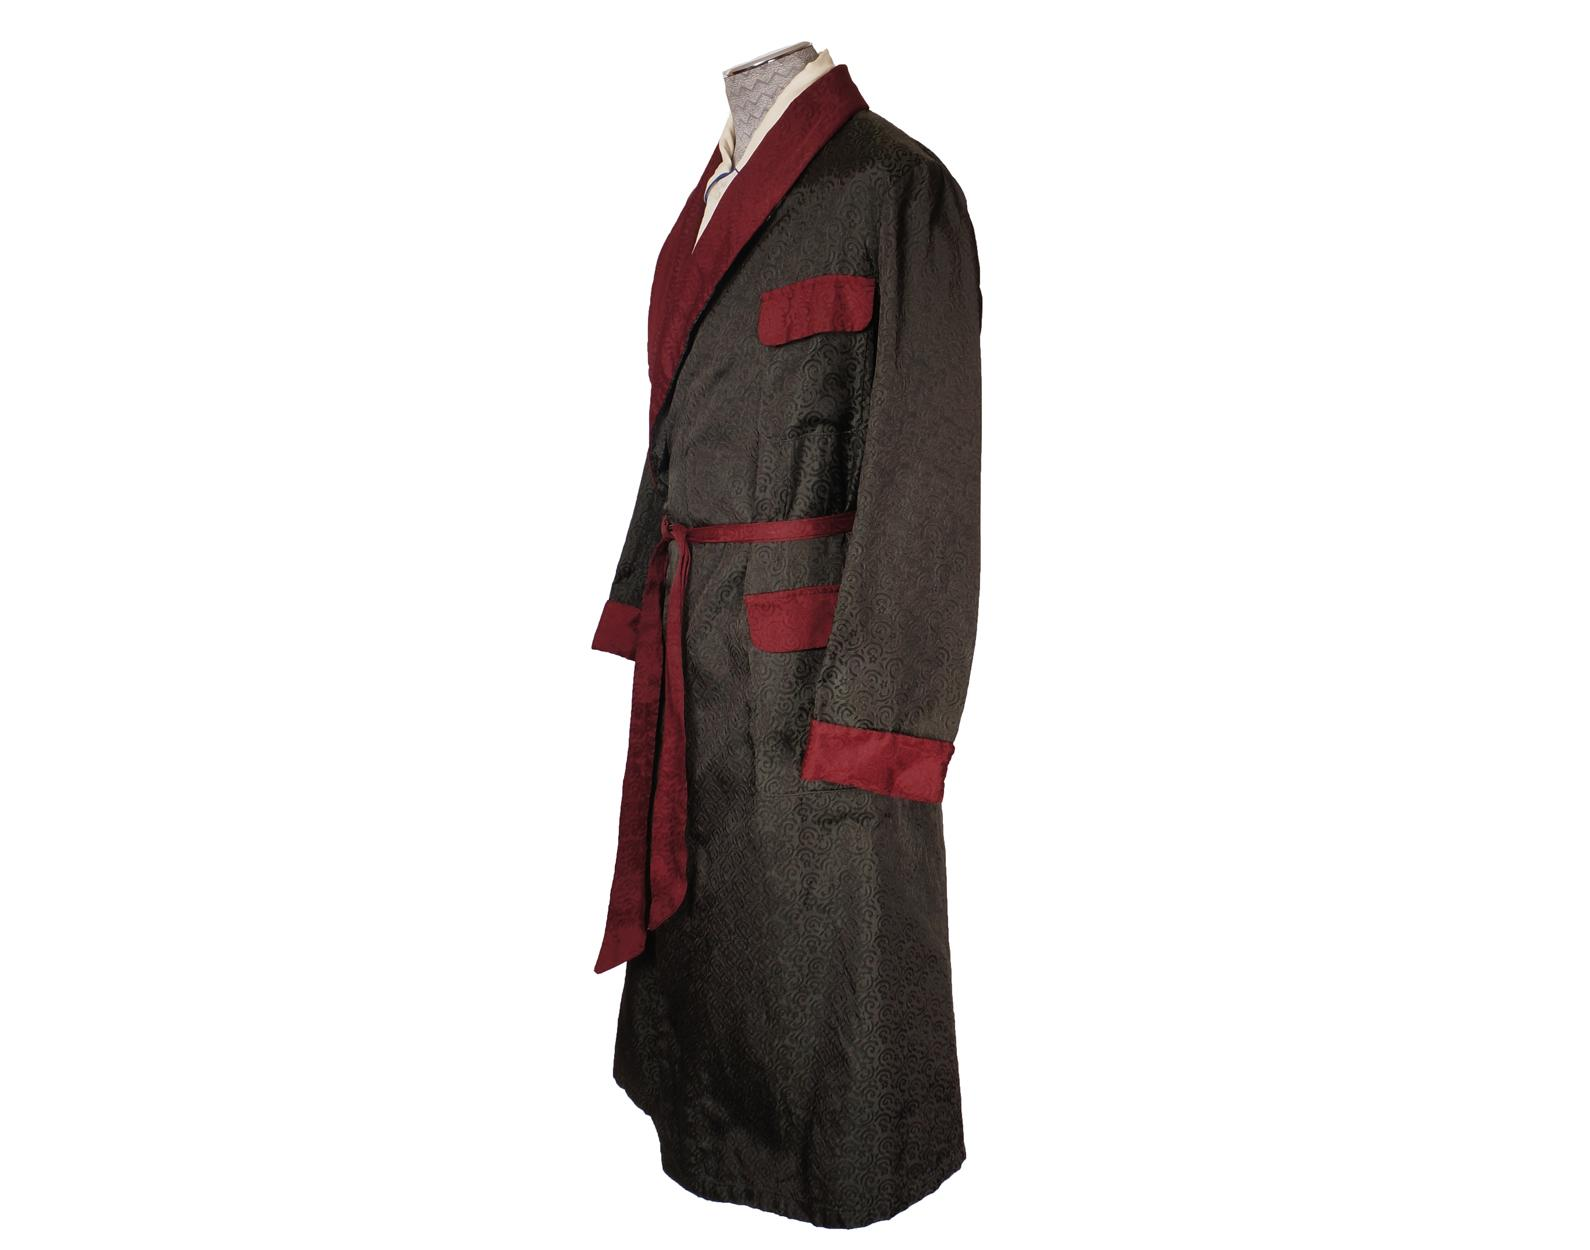 Vintage 1940s Mens Dressing Gown Green And Maroon Damask